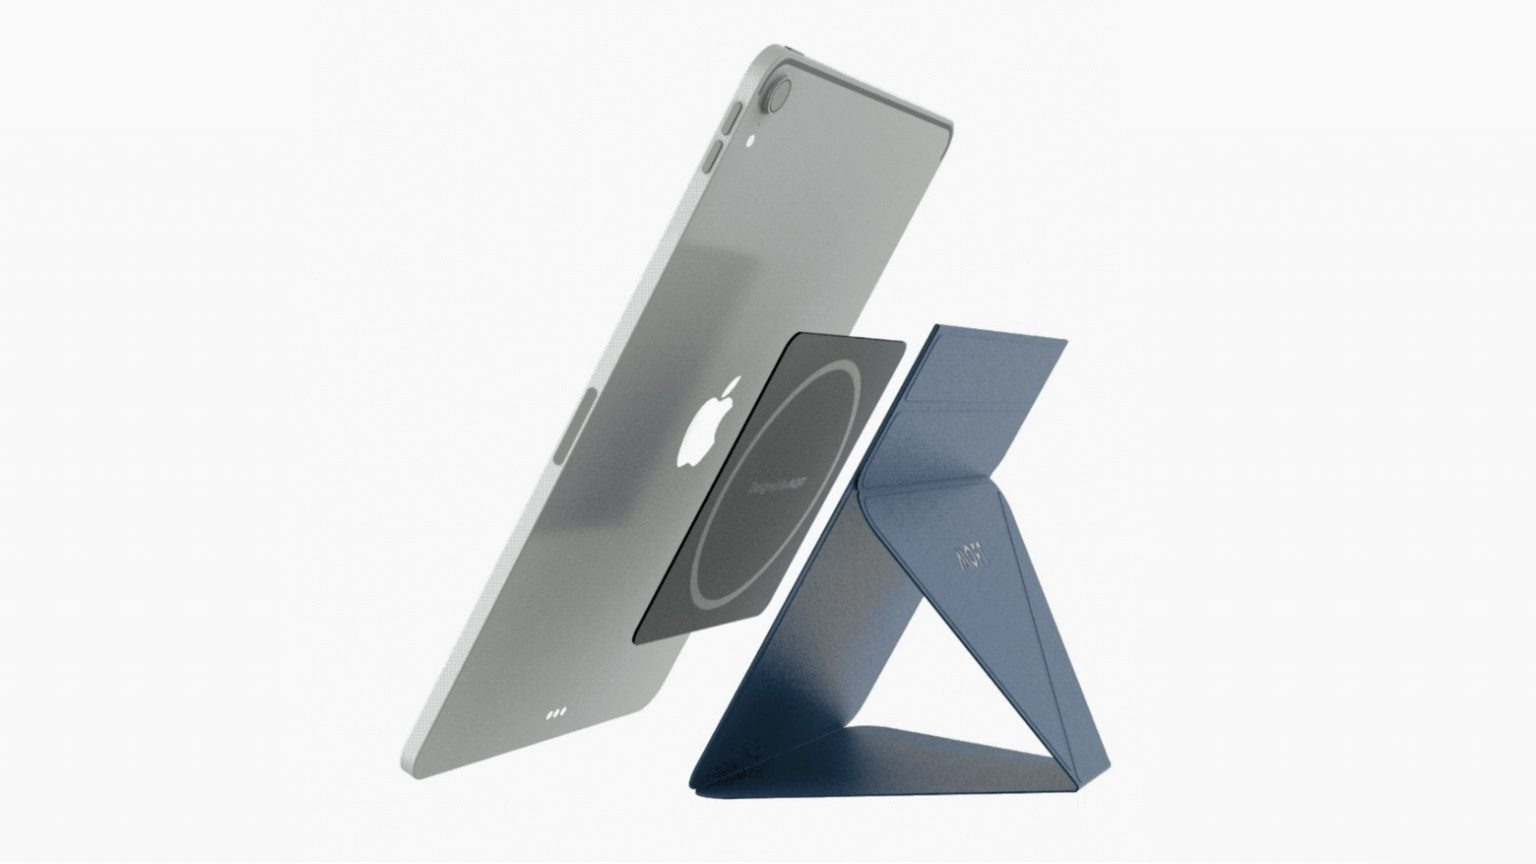 Moft Snap Tablet Stand adds lightweight kickstand to iPad